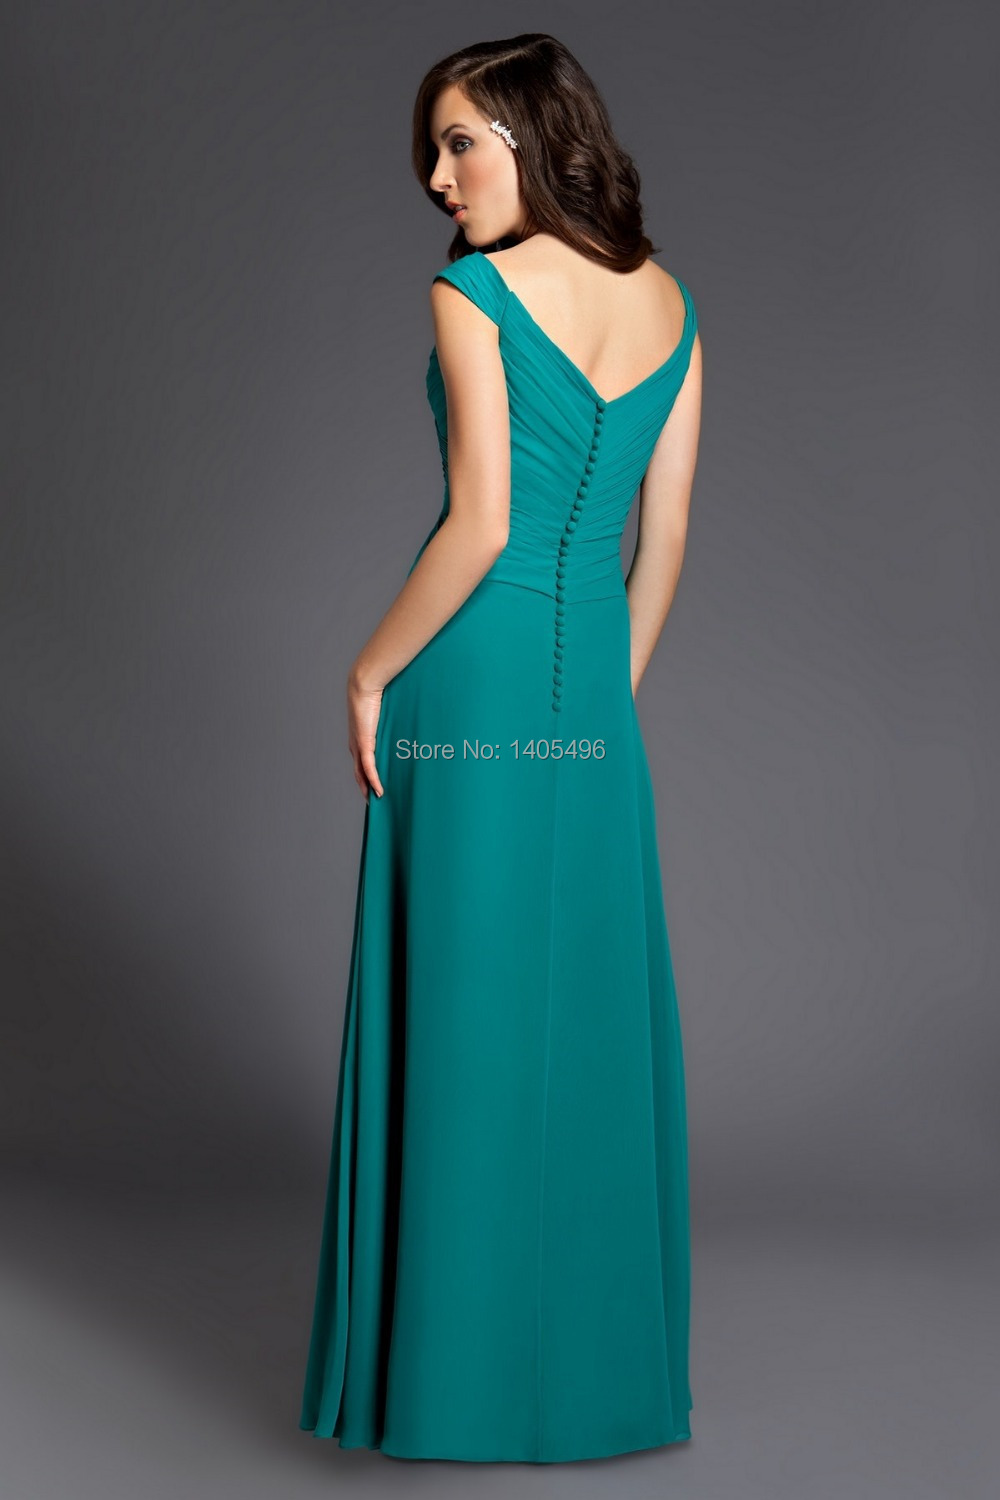 Glamorous Chiffon Bridesmaid Dresses Prom Dress with Off Shoulder ...